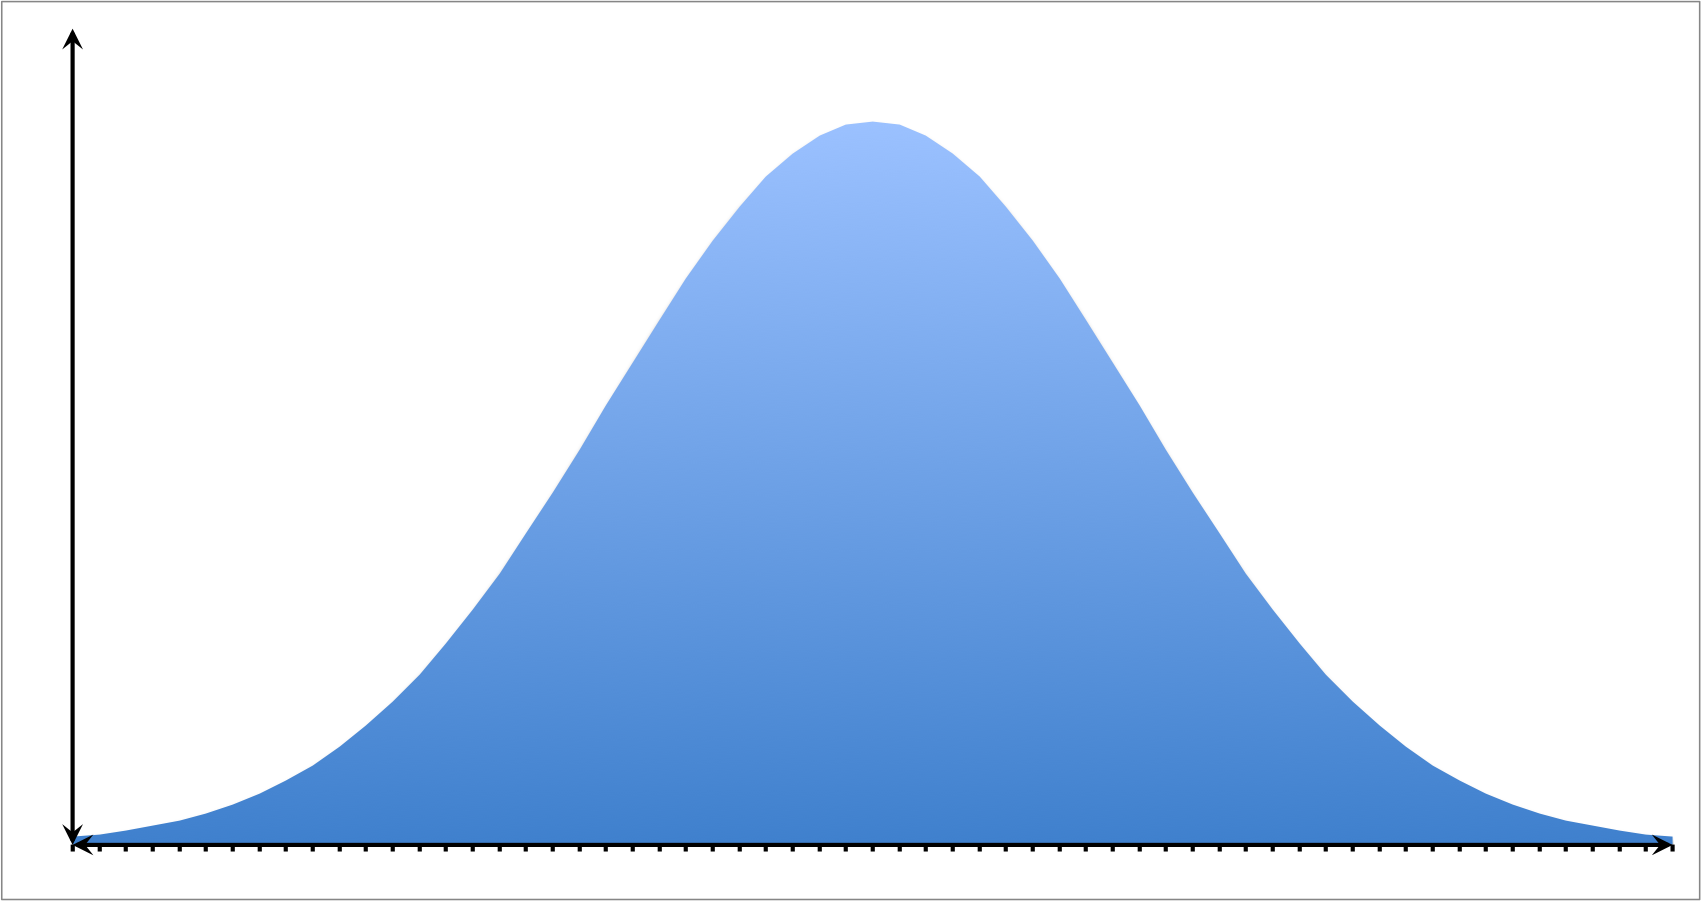 Normal Distributions - Statistics